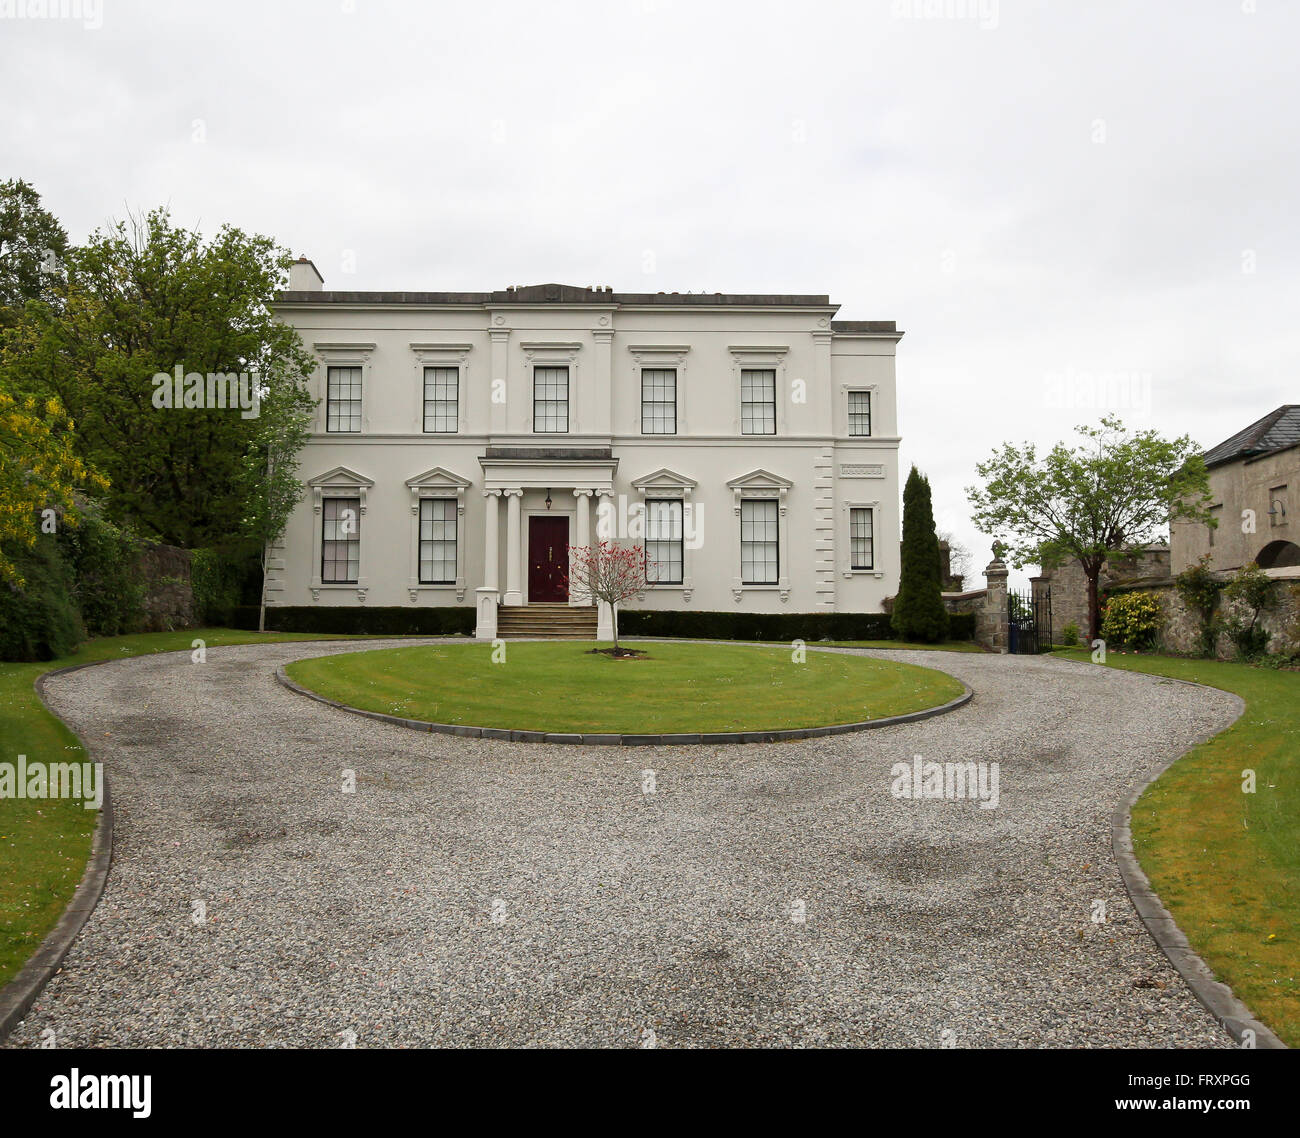 Hatley Manor in Carrick on Shannon, County Leitrim, Ireland. The stately home was the home of the St George family. - Stock Image